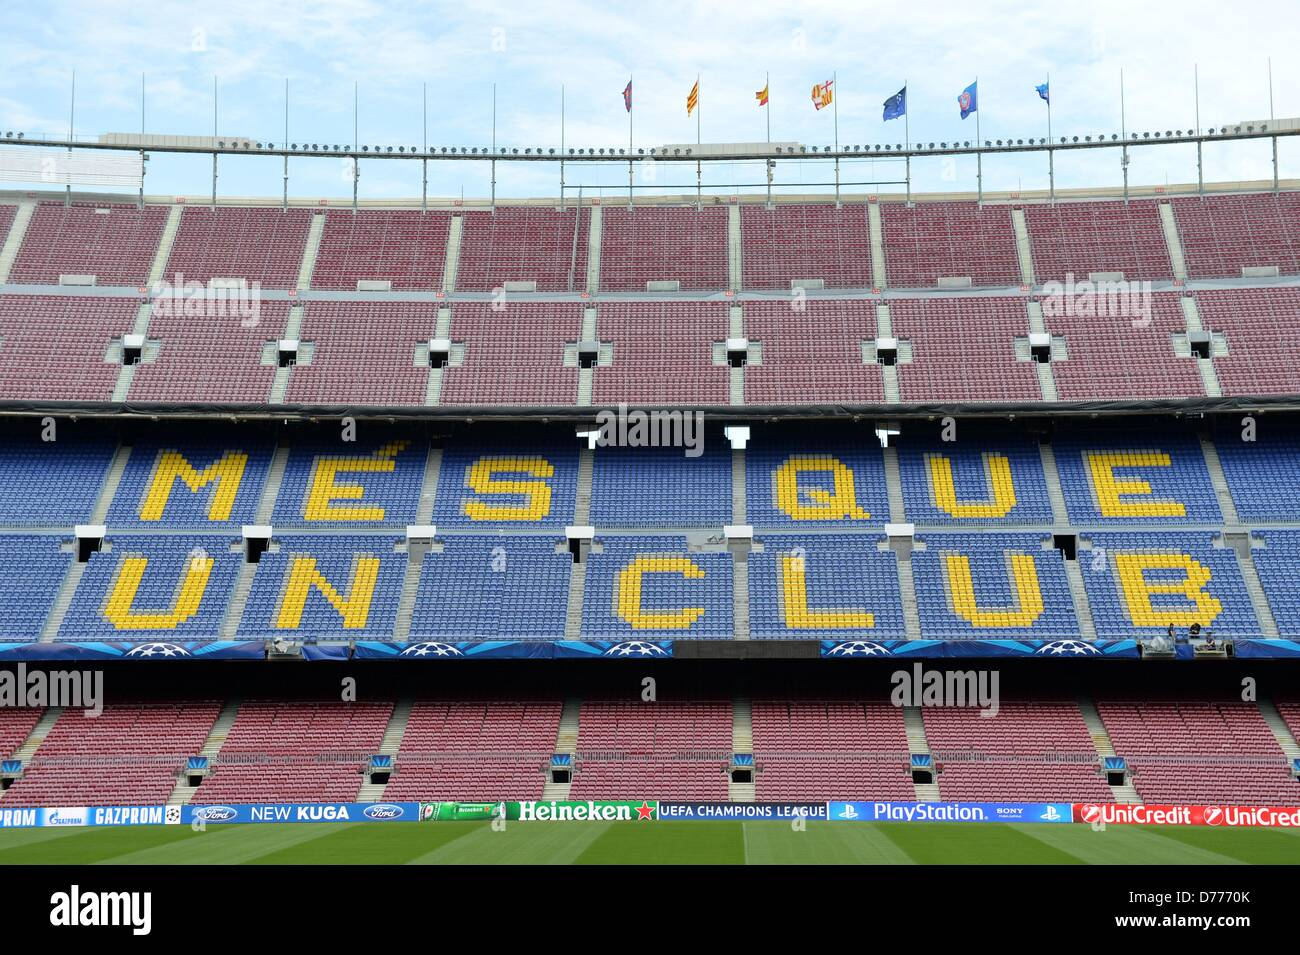 'Mes que un Club' (More than a Club) on the back straights of the Camp Nou Stadium in Barcelona,Spain, - Stock Image